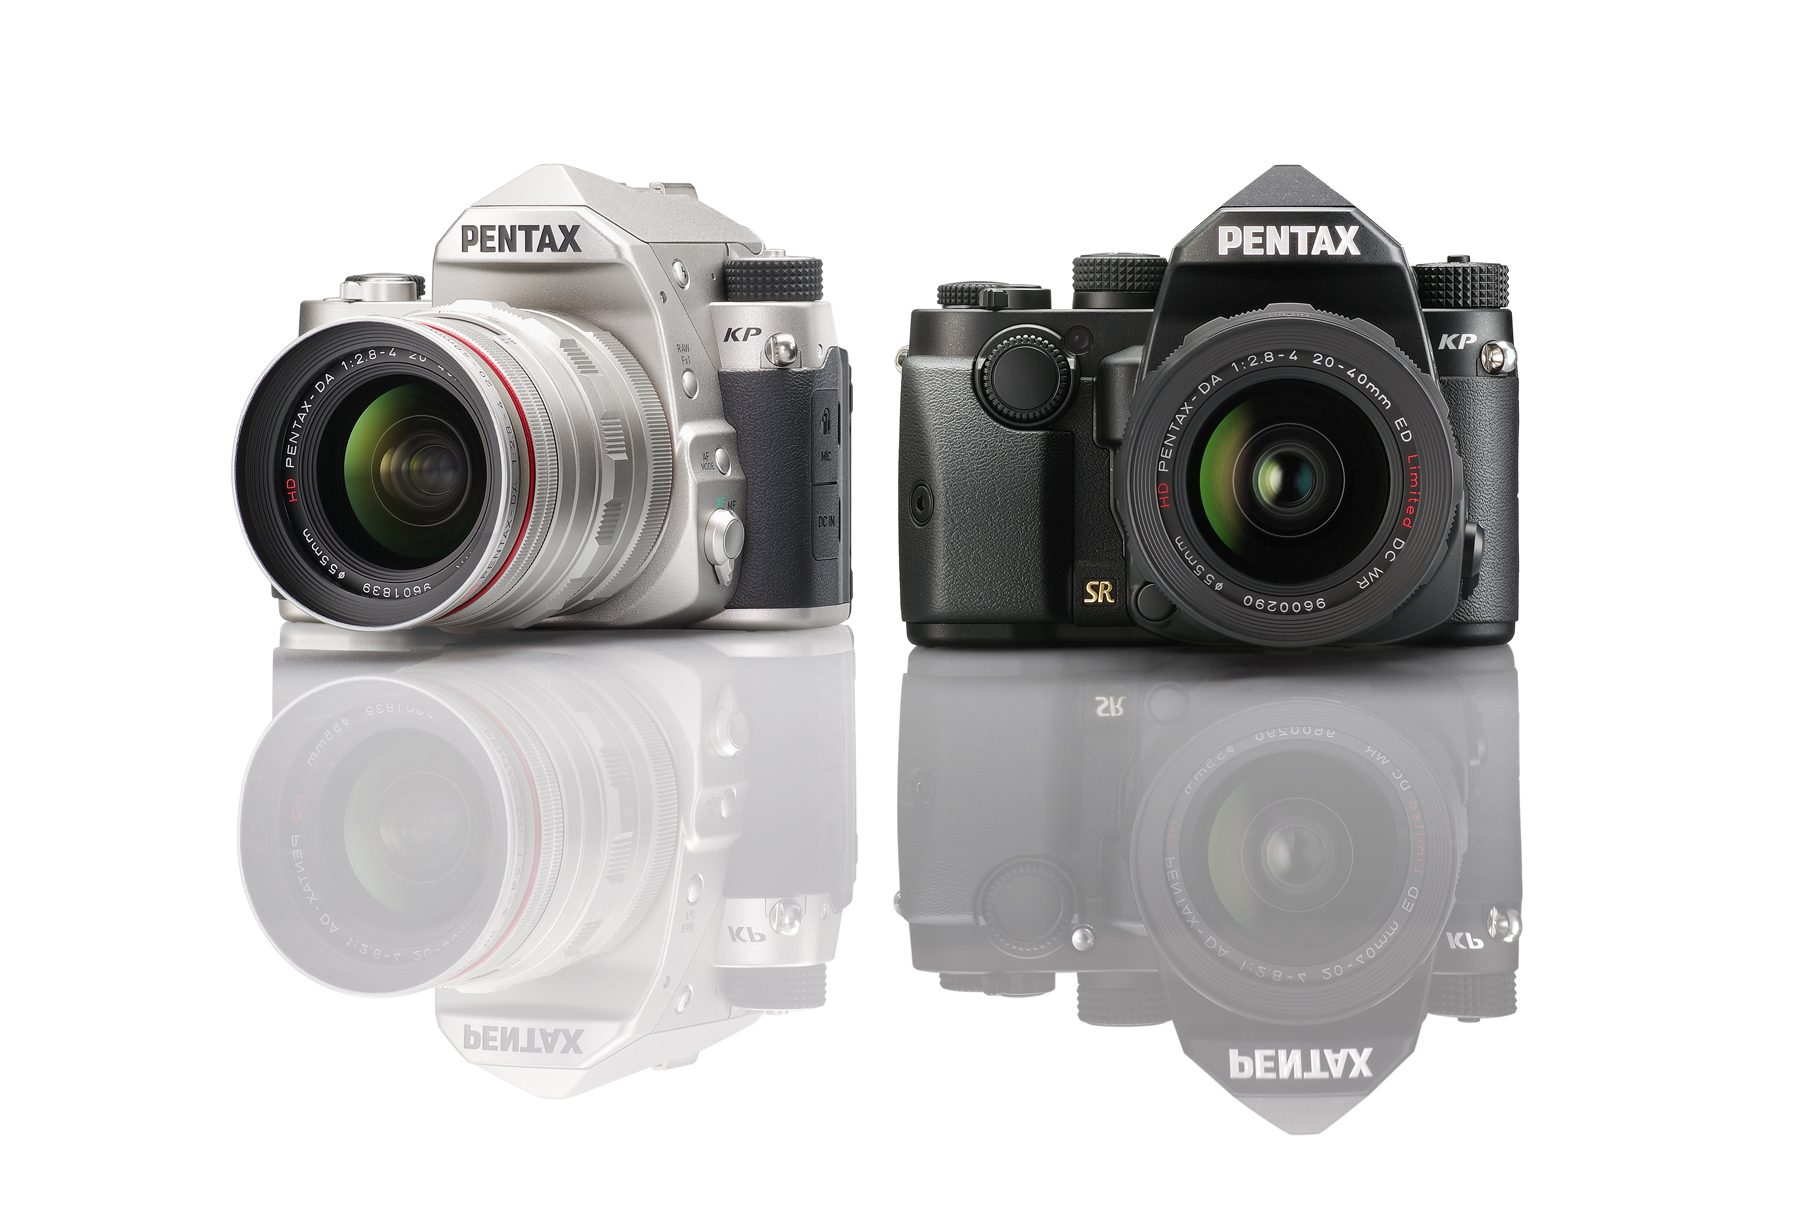 Ricoh Imaging unveils the Pentax KP